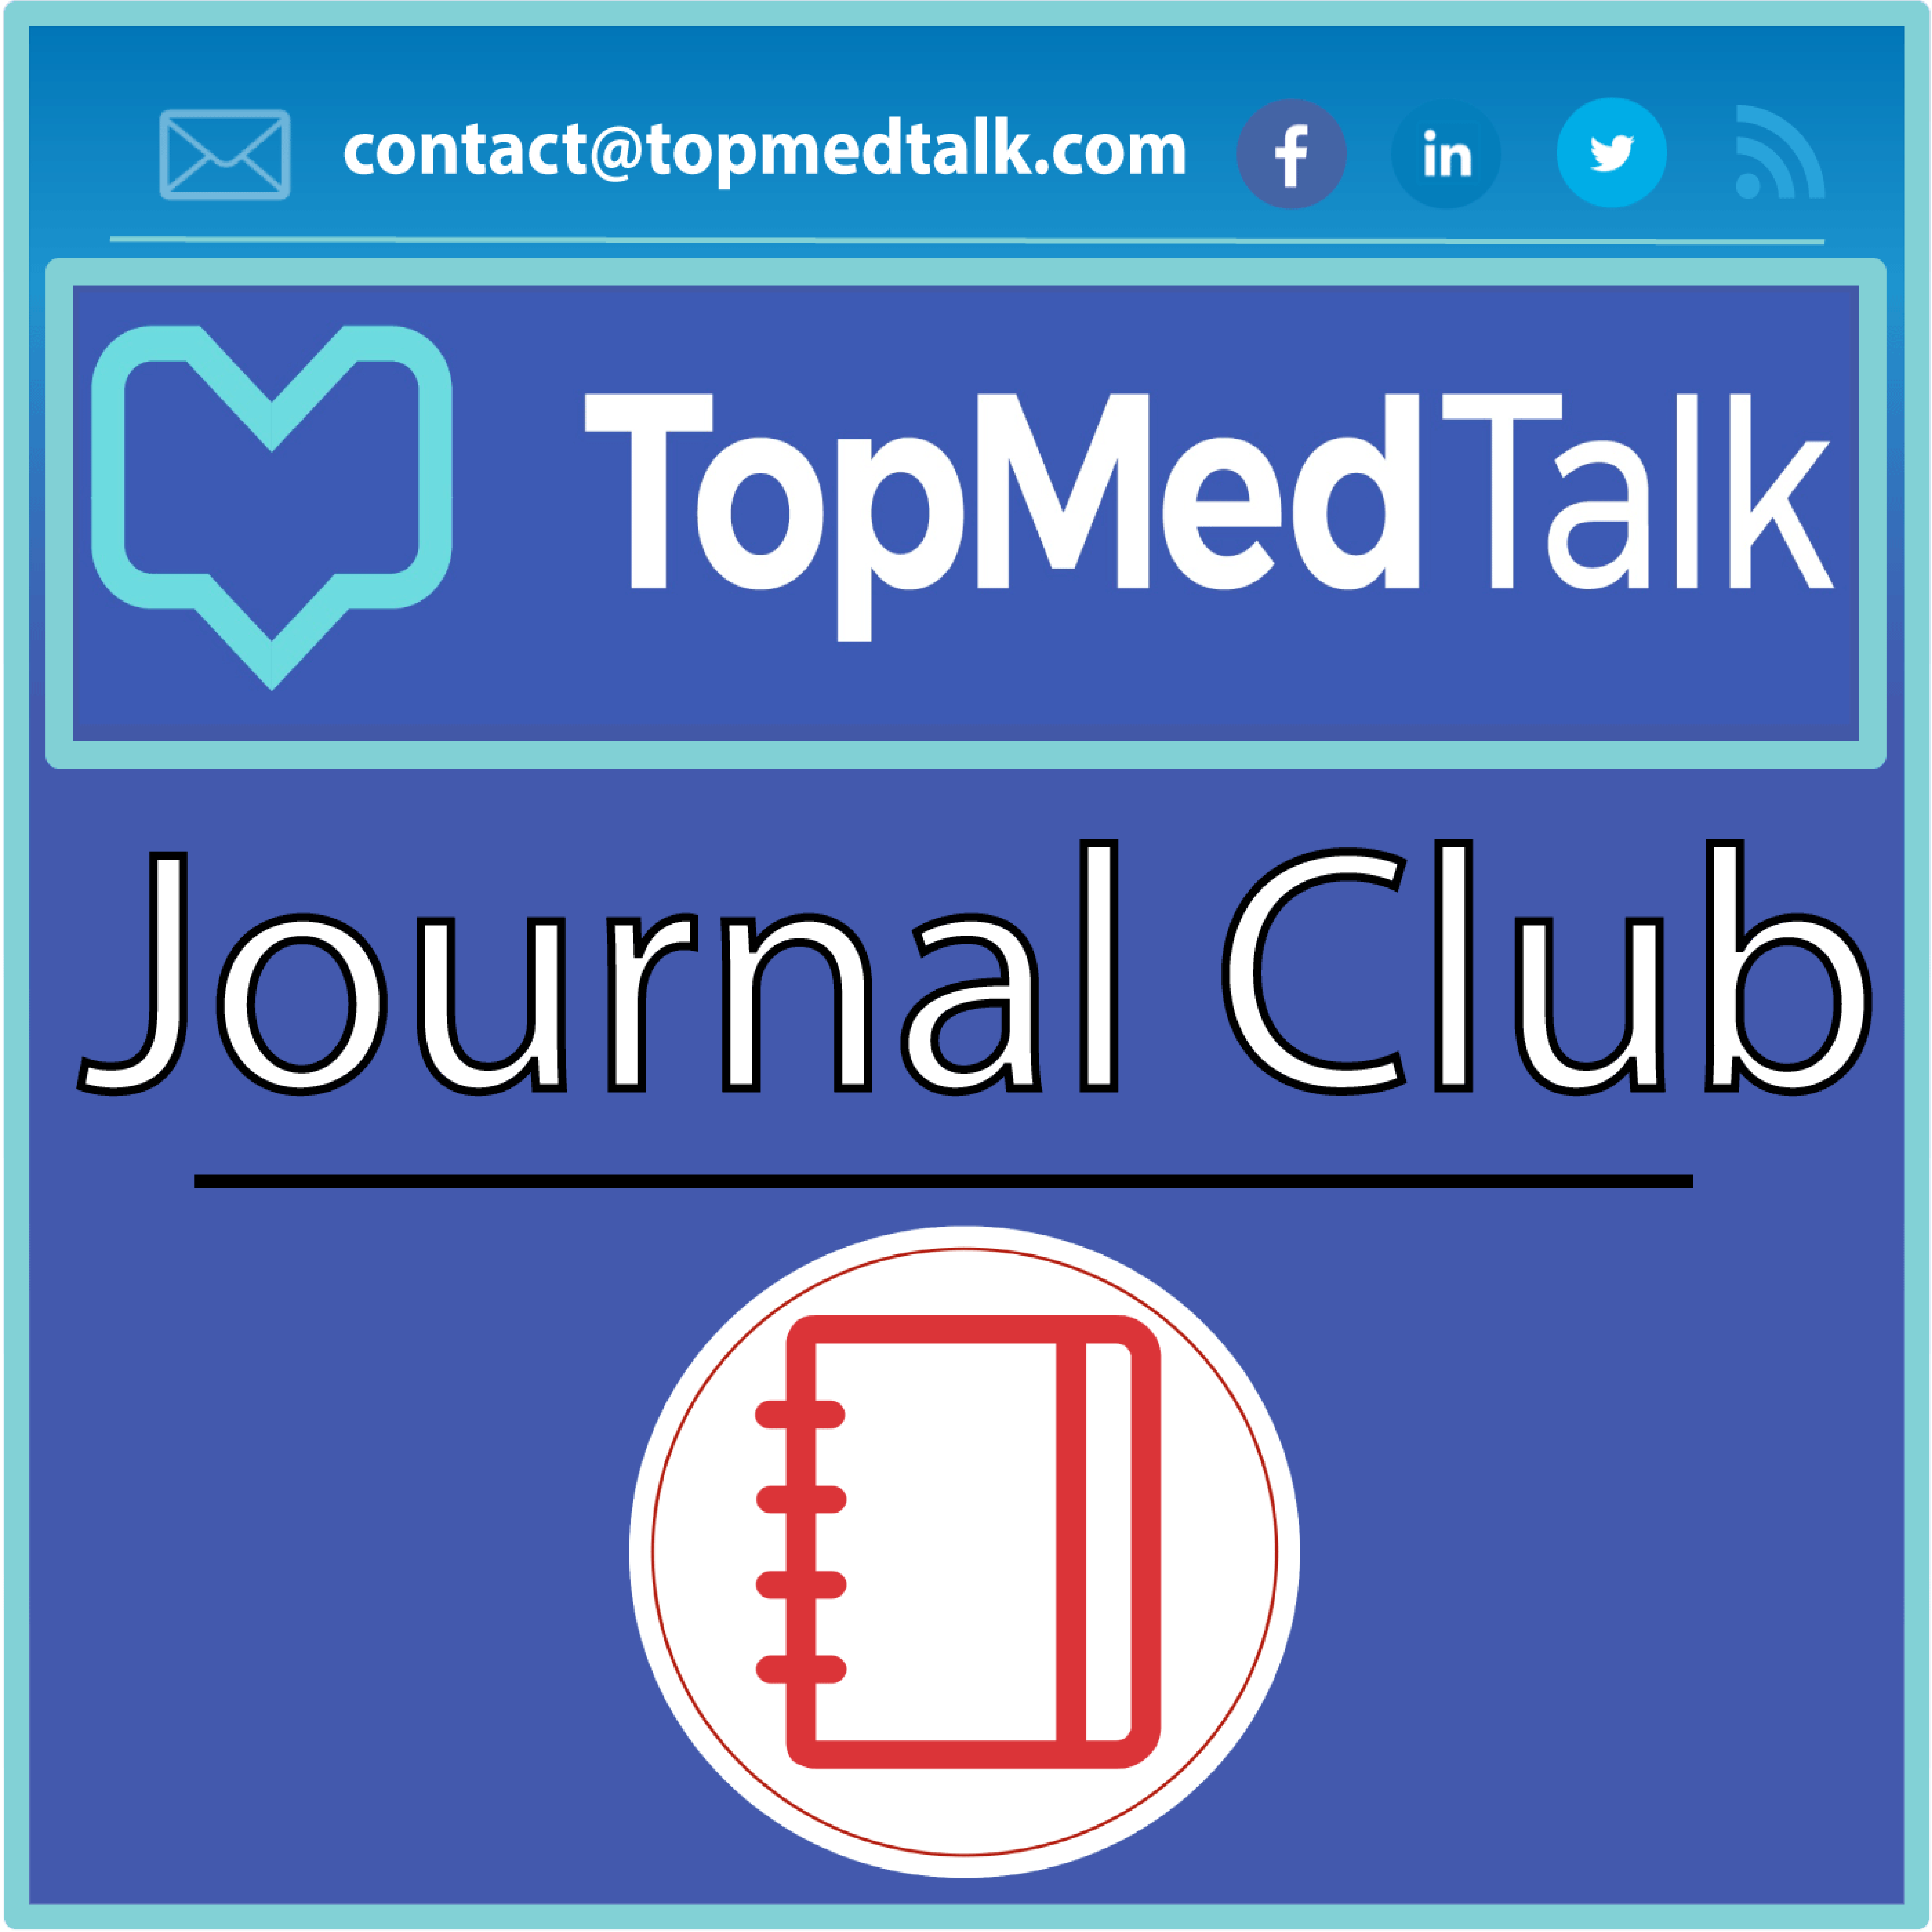 Journal Club Express 27/04/18